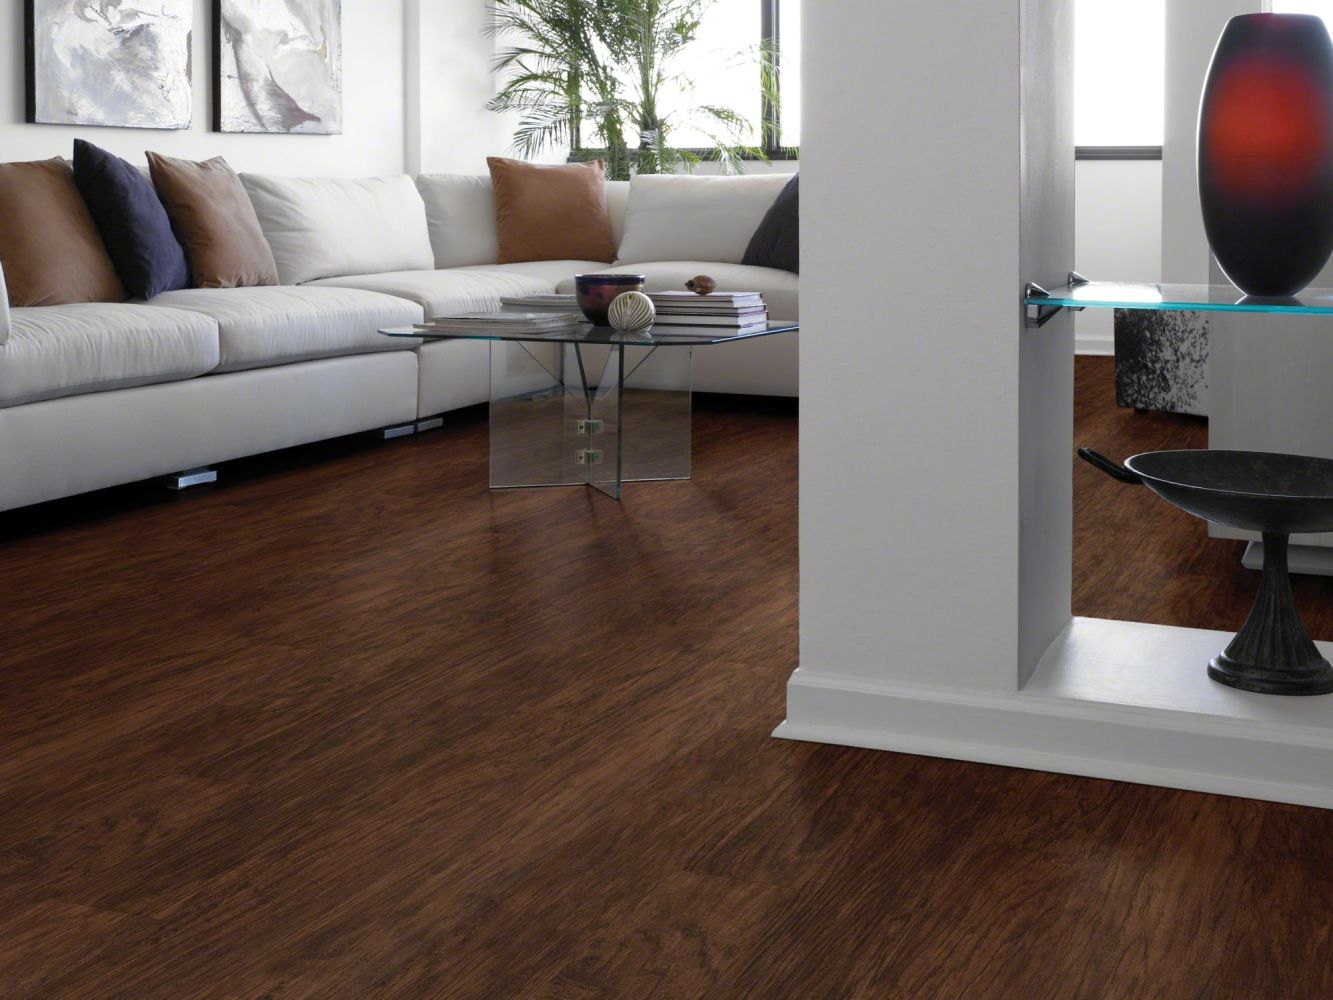 Shaw Floors Resilient Property Solutions Lookout Mountain Fairmount Orchard 00750_VE172